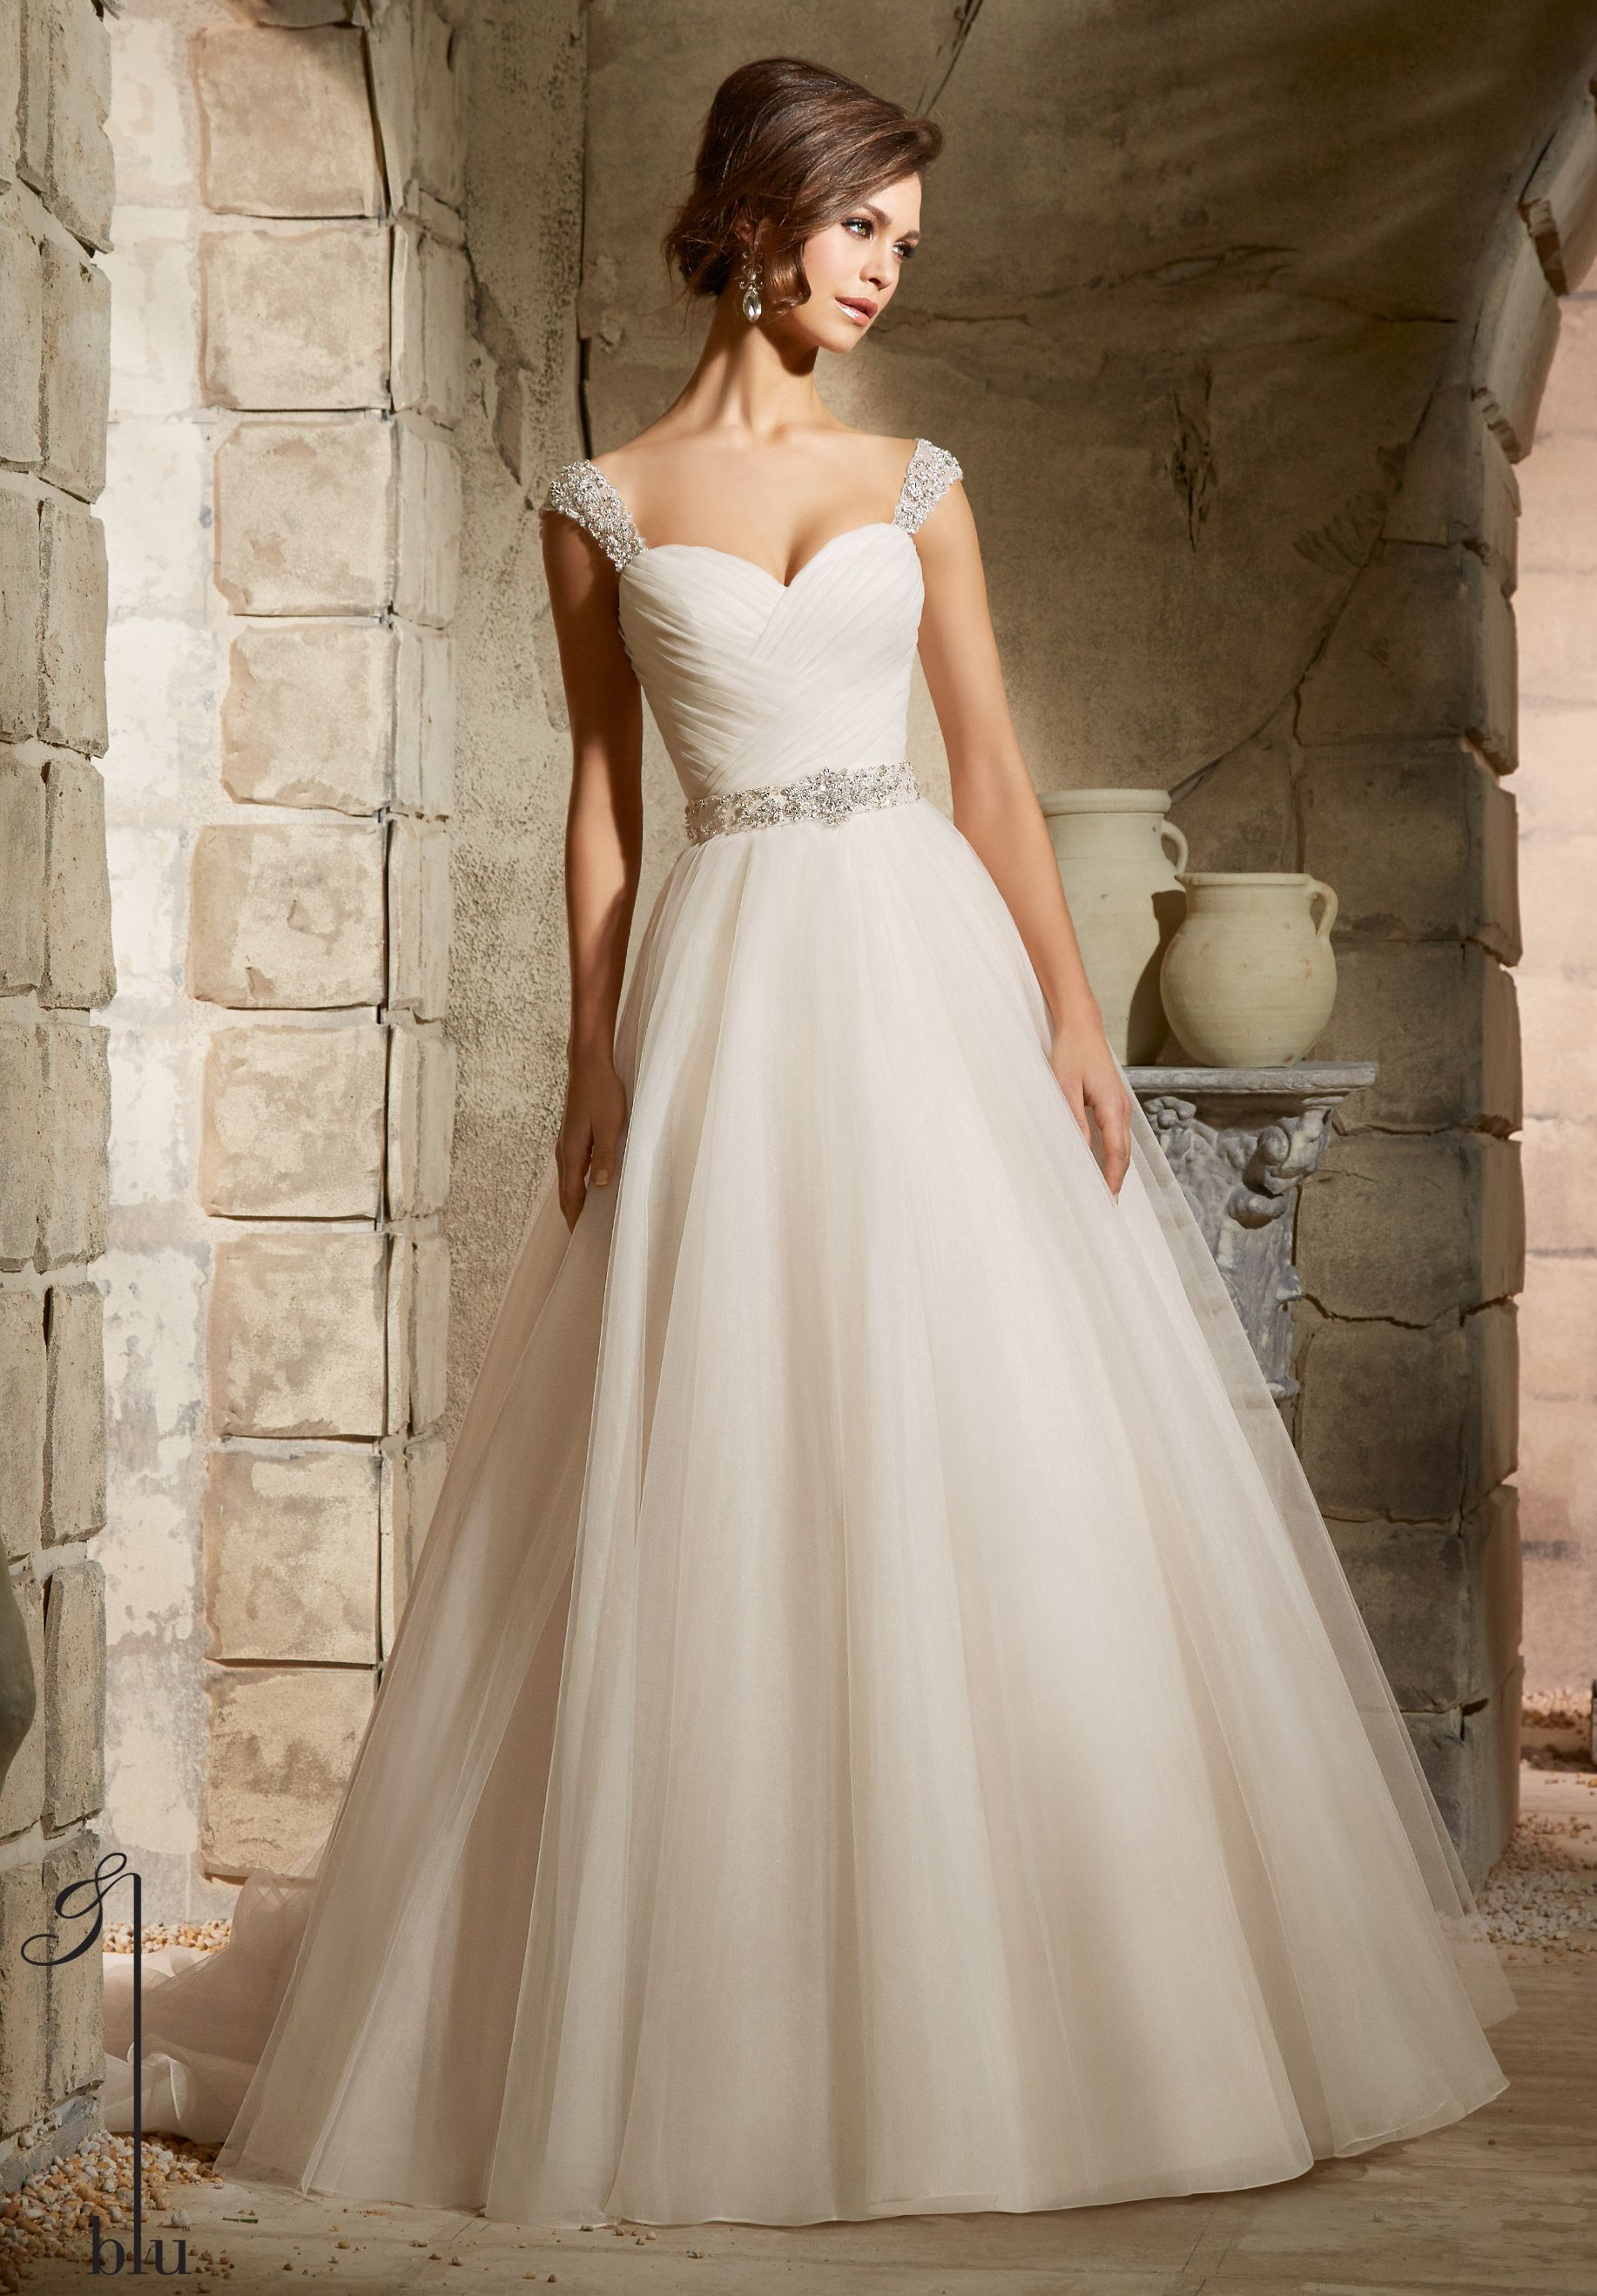 Bridal Bridesmaid Dresses | Tulle balls, Princess bridal and Wedding ...